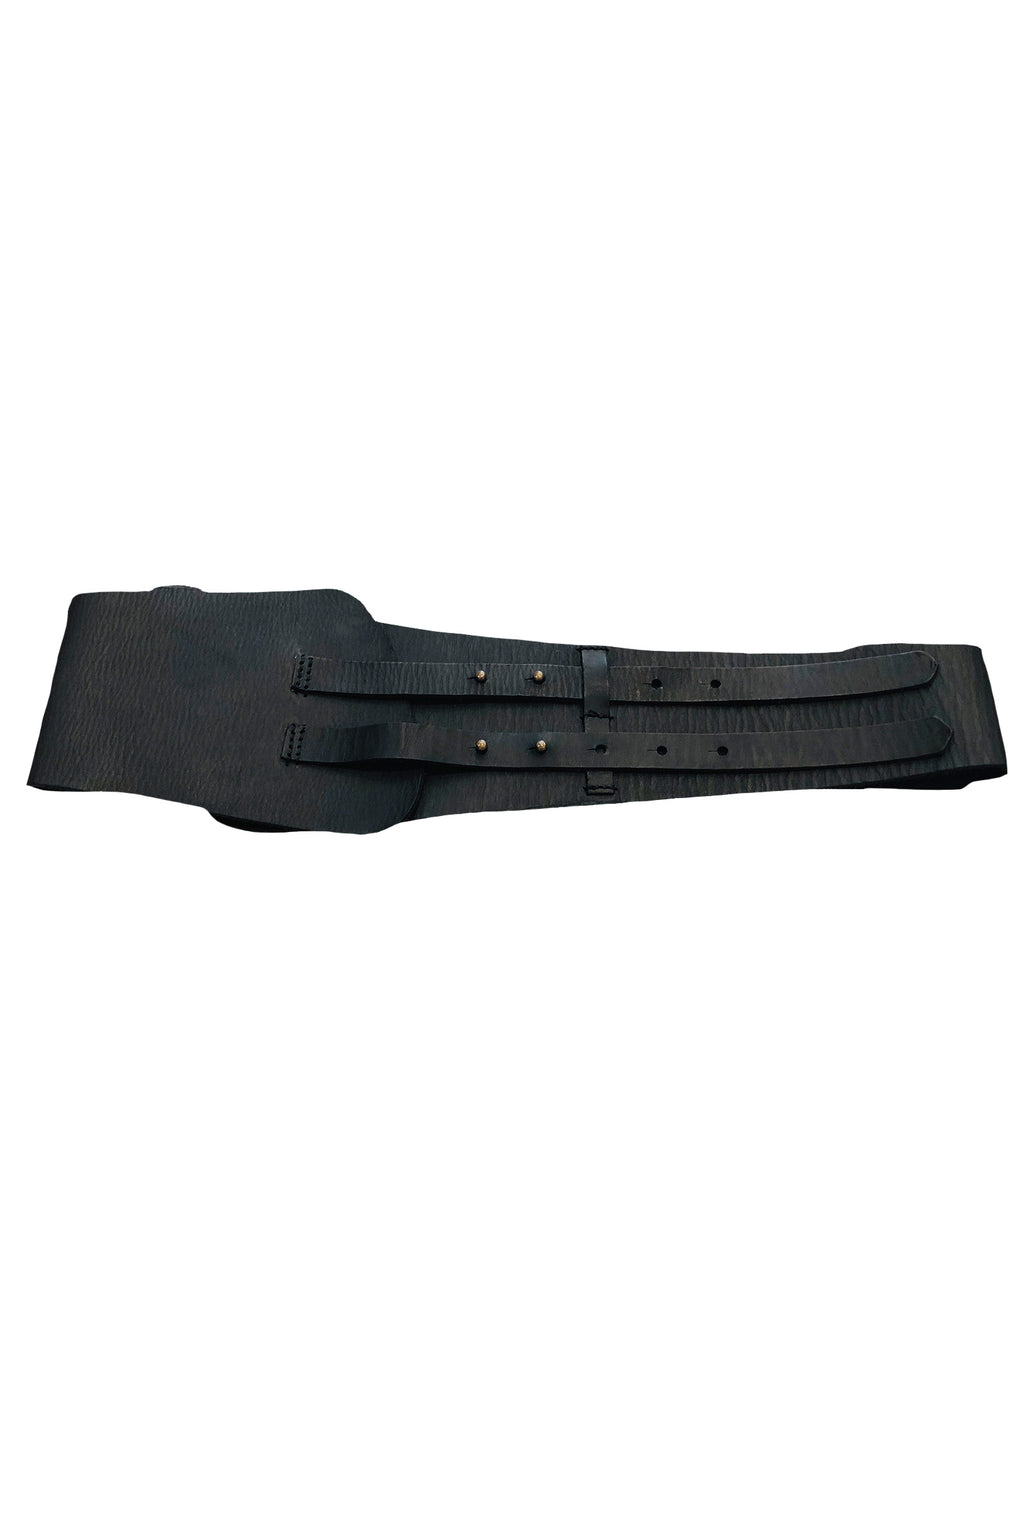 Forte Forte Brassiere Leather Belt in Black